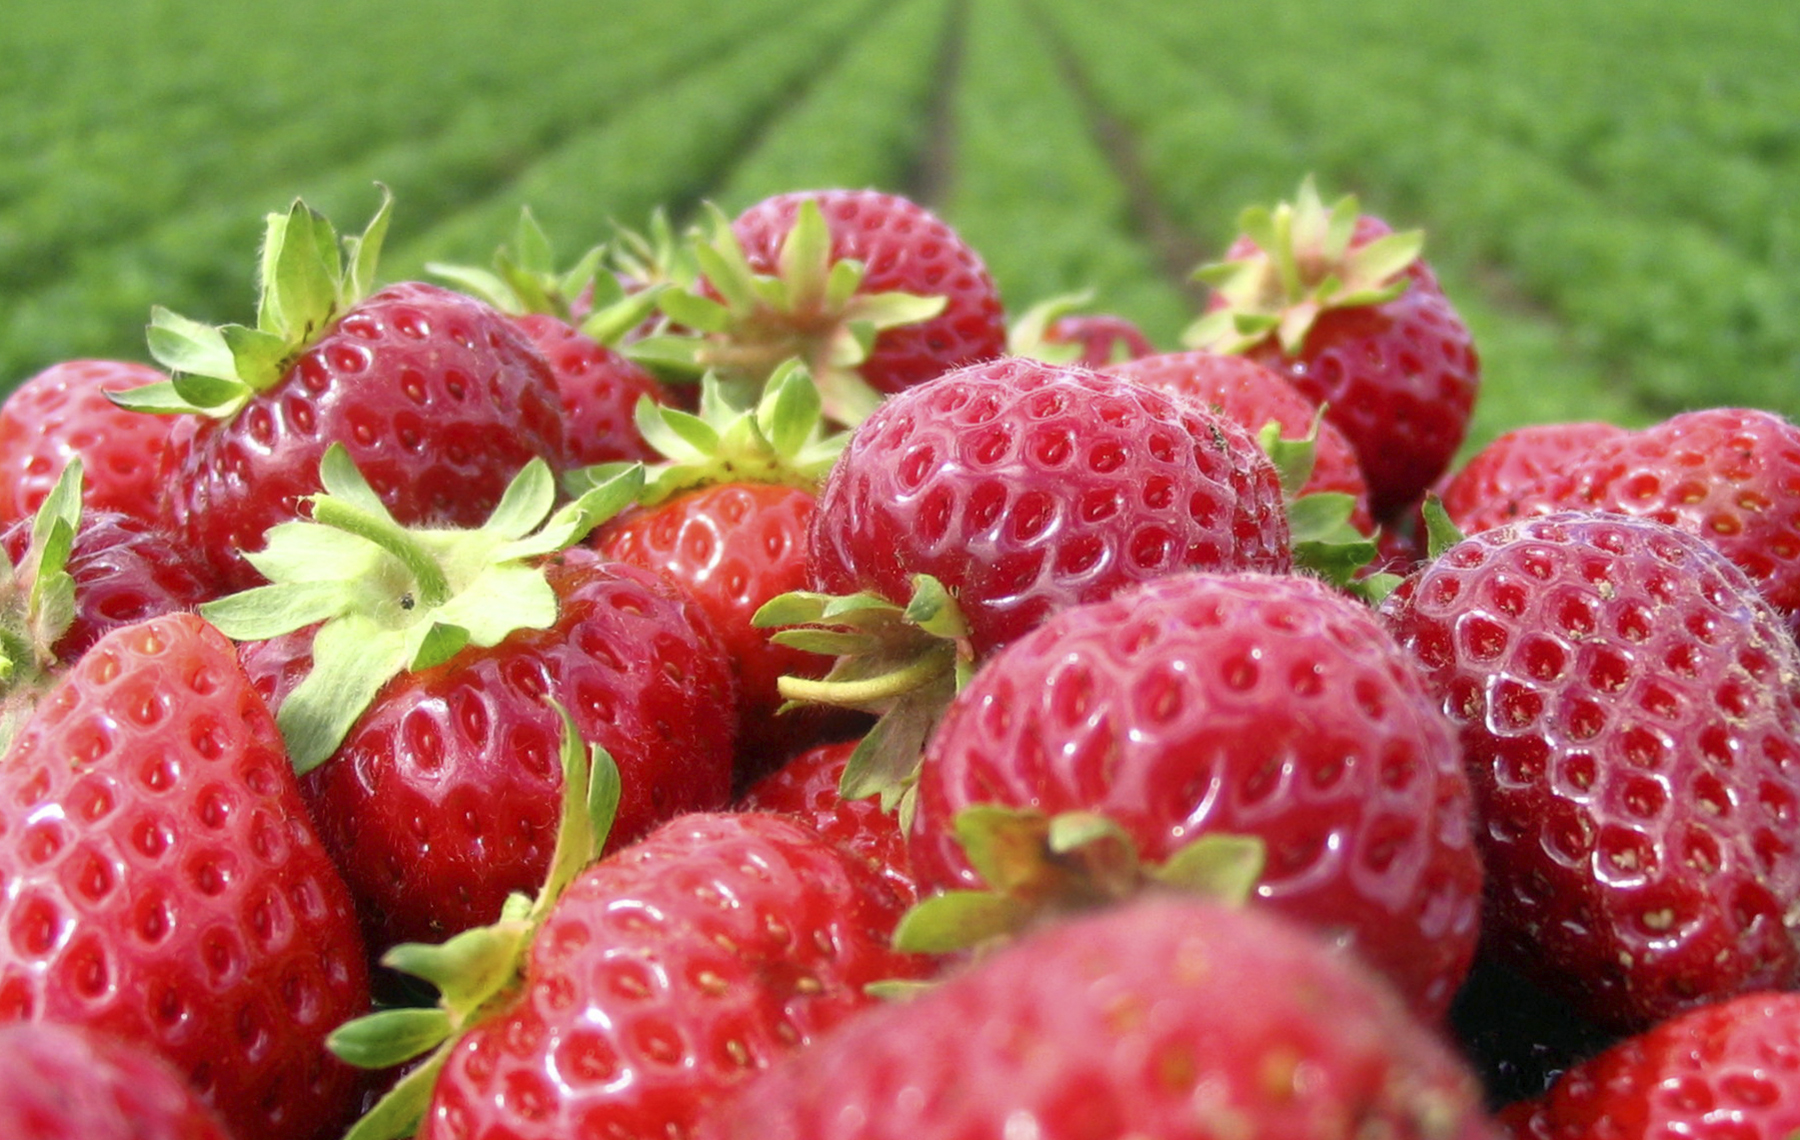 Strawberries fruit picture